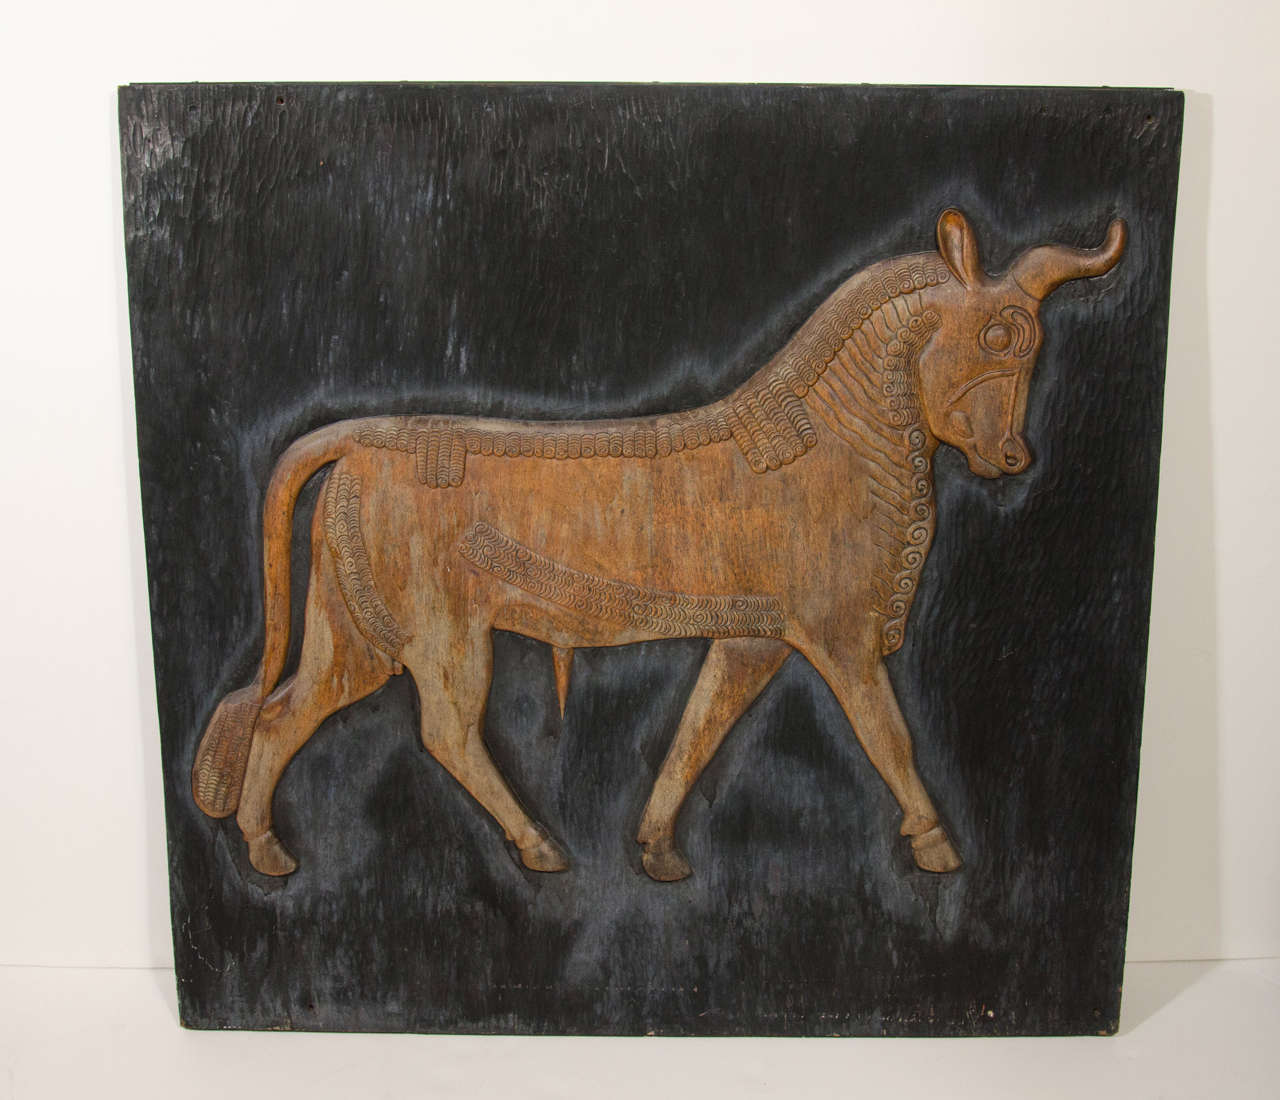 Rare artwork featuring Arabic bull in hand-carved reclaimed wood with exquisite attention to form and detail. Highly stylized engraved bull with decorative carvings over wood panel with hand chiseled grooves throughout. The bull has tones of faded